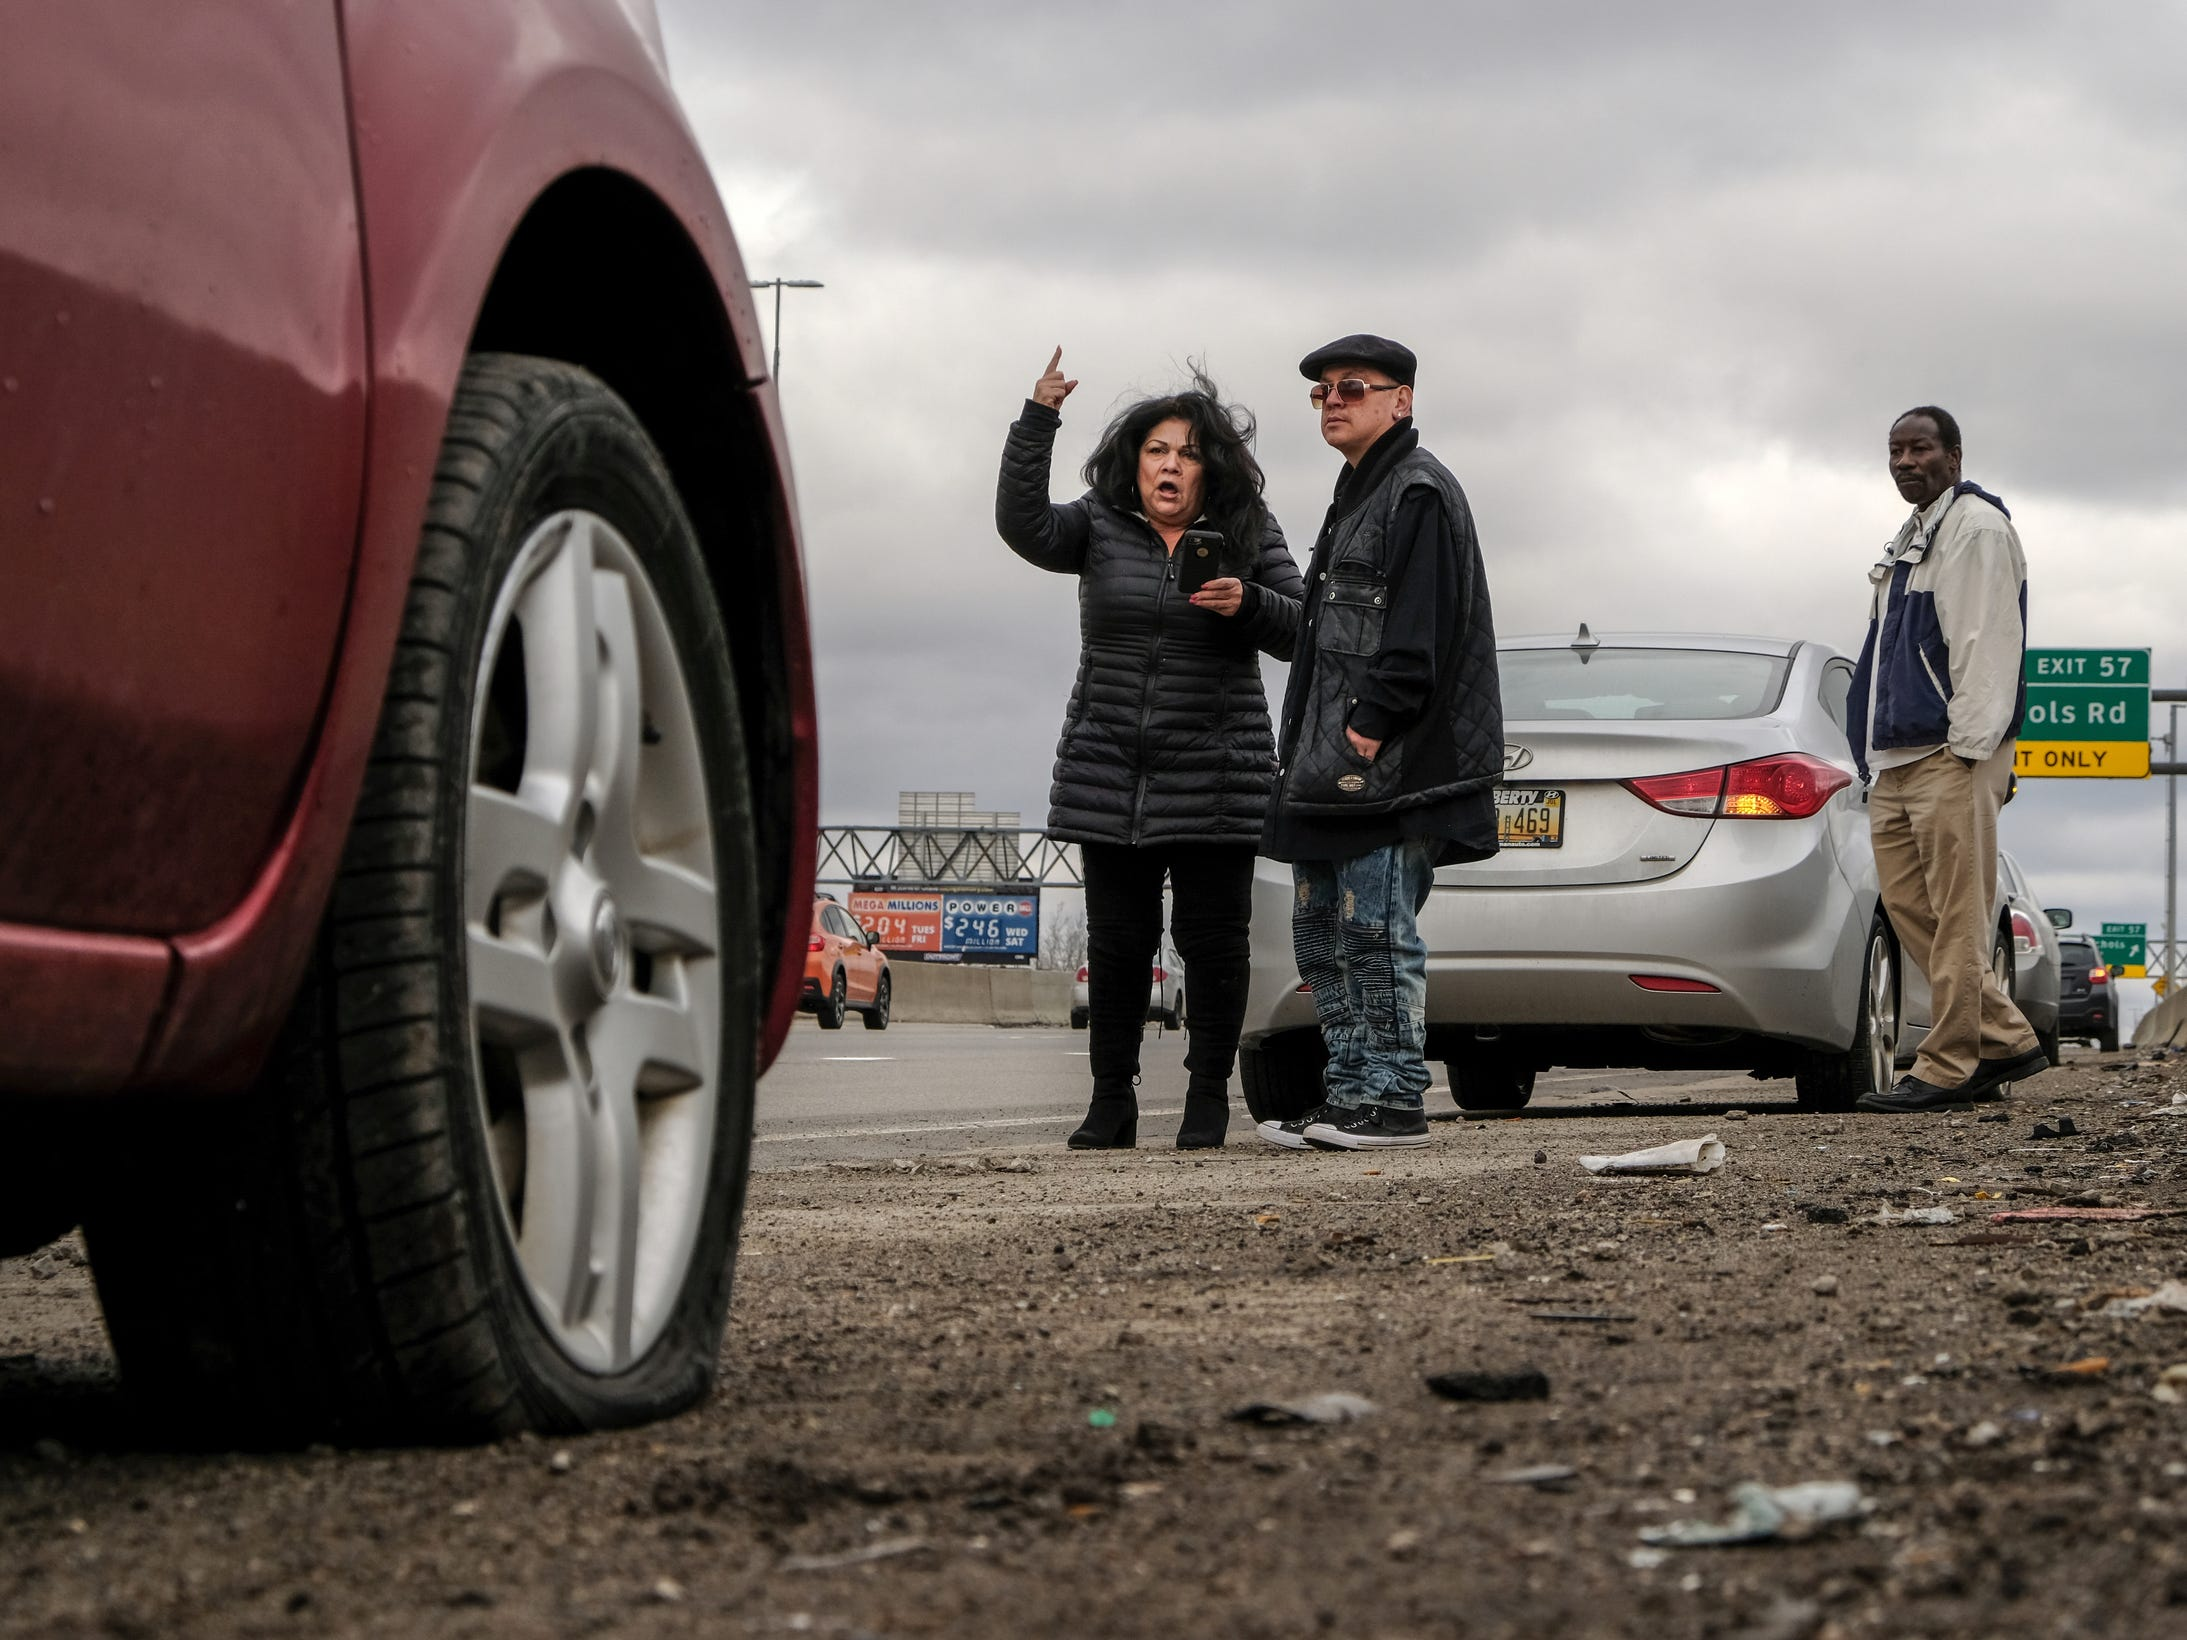 Sylvia Campos of Detroit gets upset while watching traffic from the side of northbound I-75 near the McNichols Rd. exit with her boyfriend Rolando Lopez of Saginaw after hitting a pothole that left her front passenger side tire flat on Wednesday, February 21, 2018 in Detroit.